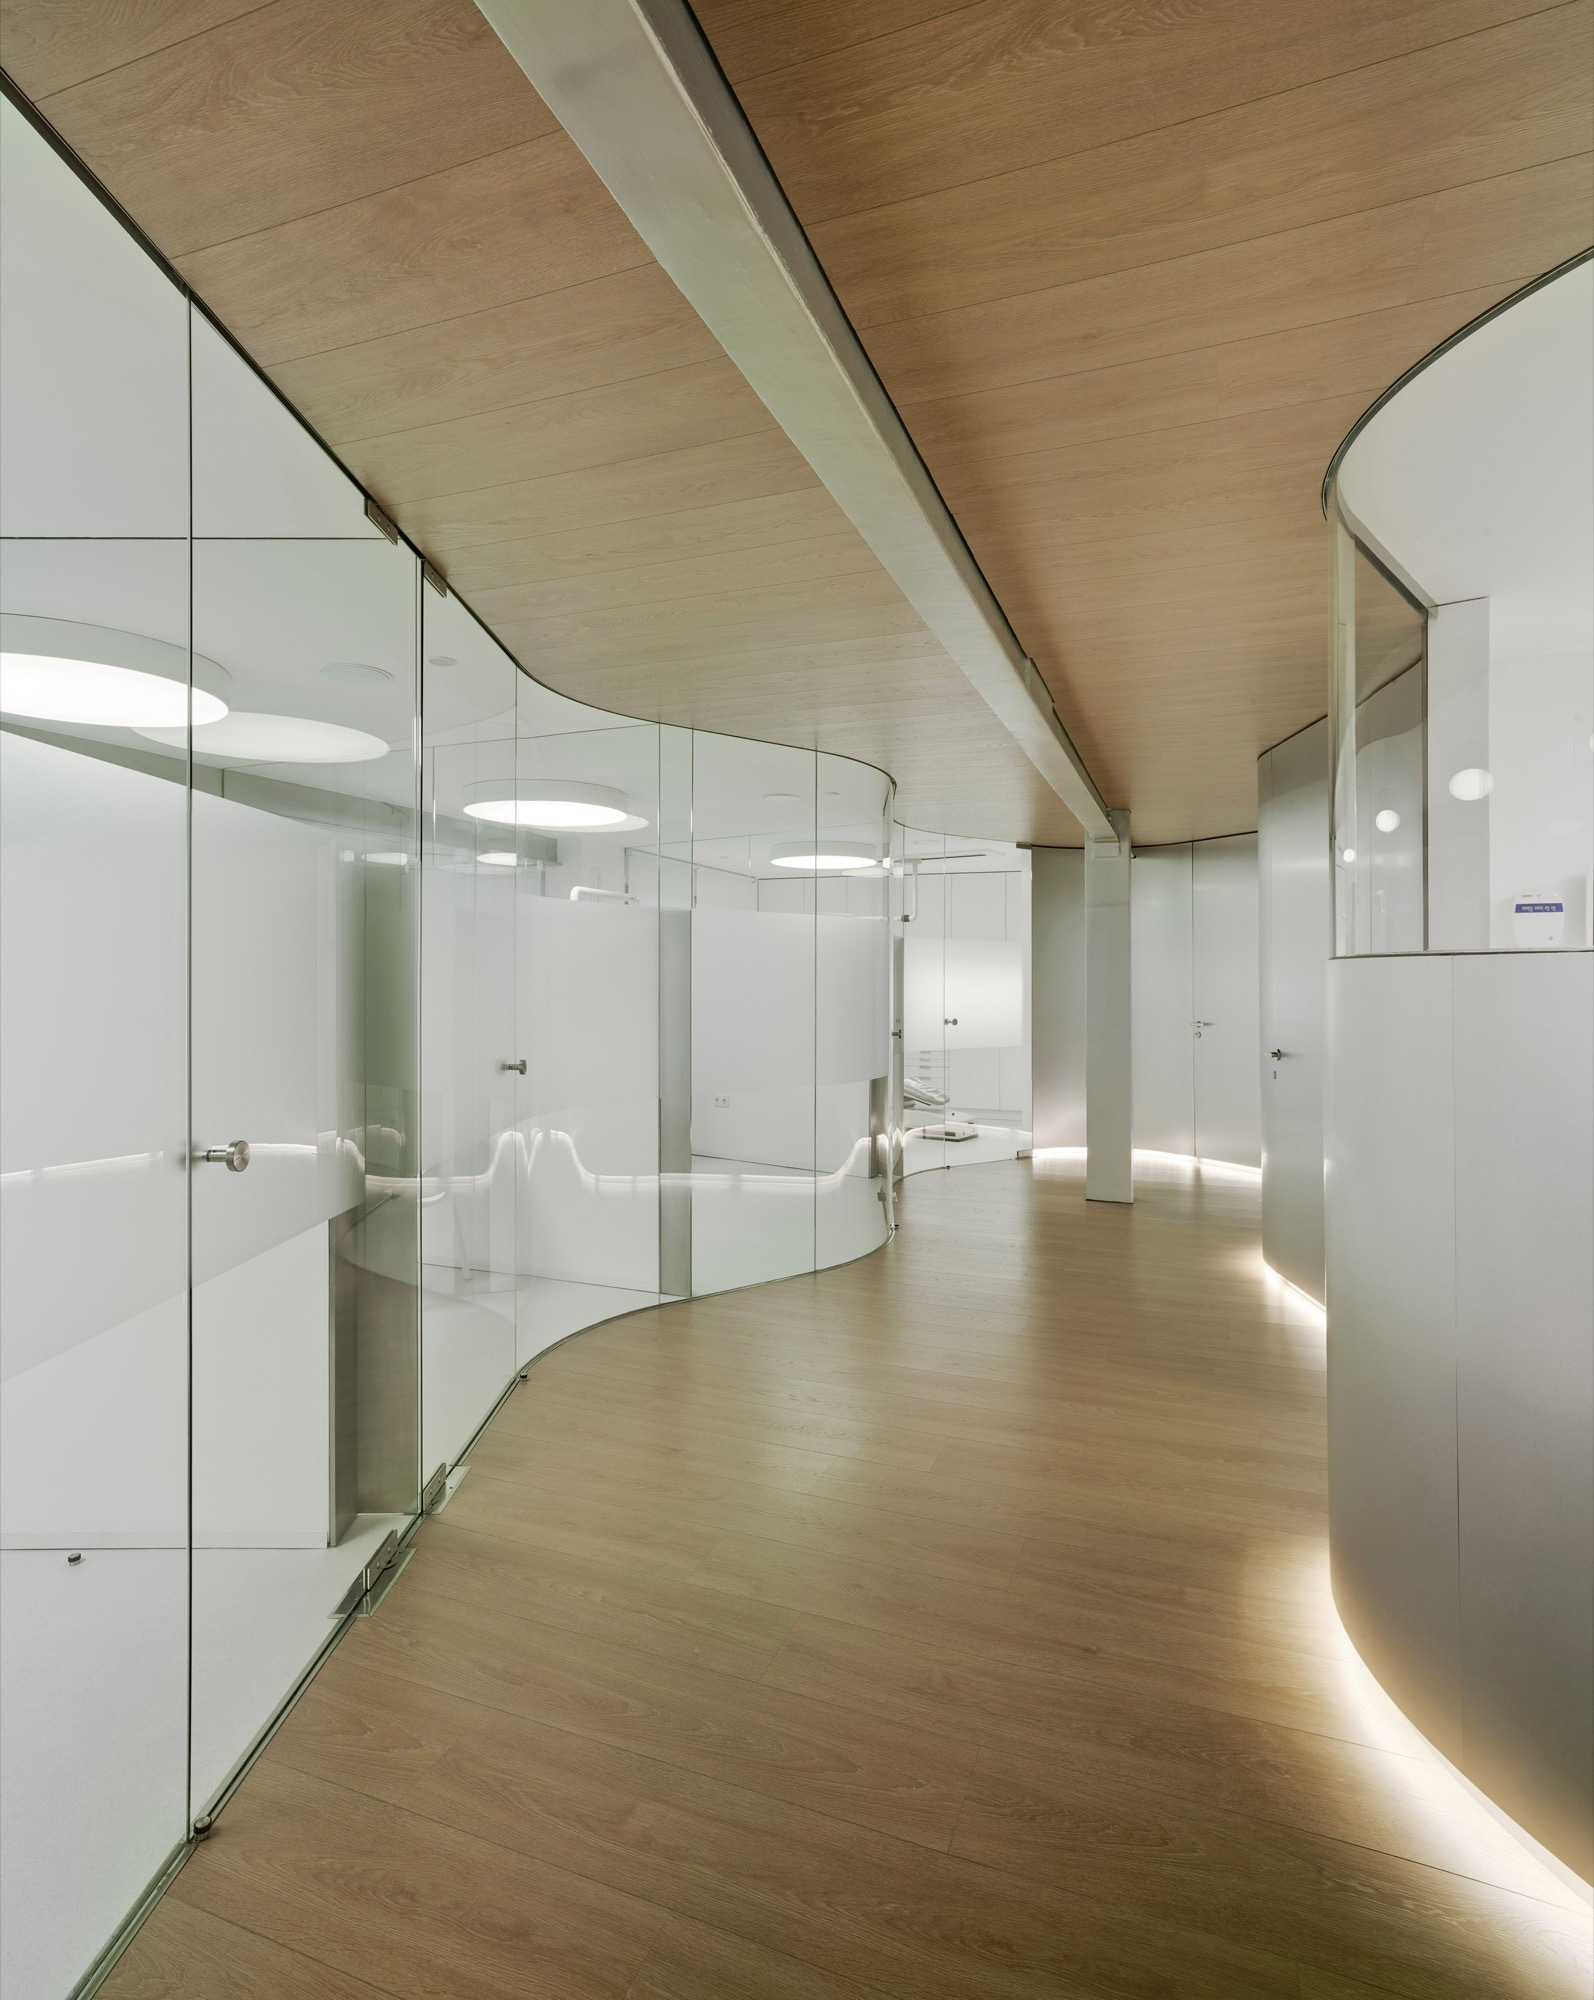 Cl nica dental milian jaime sepulcre bernad archdaily for Techos arquitectonicos